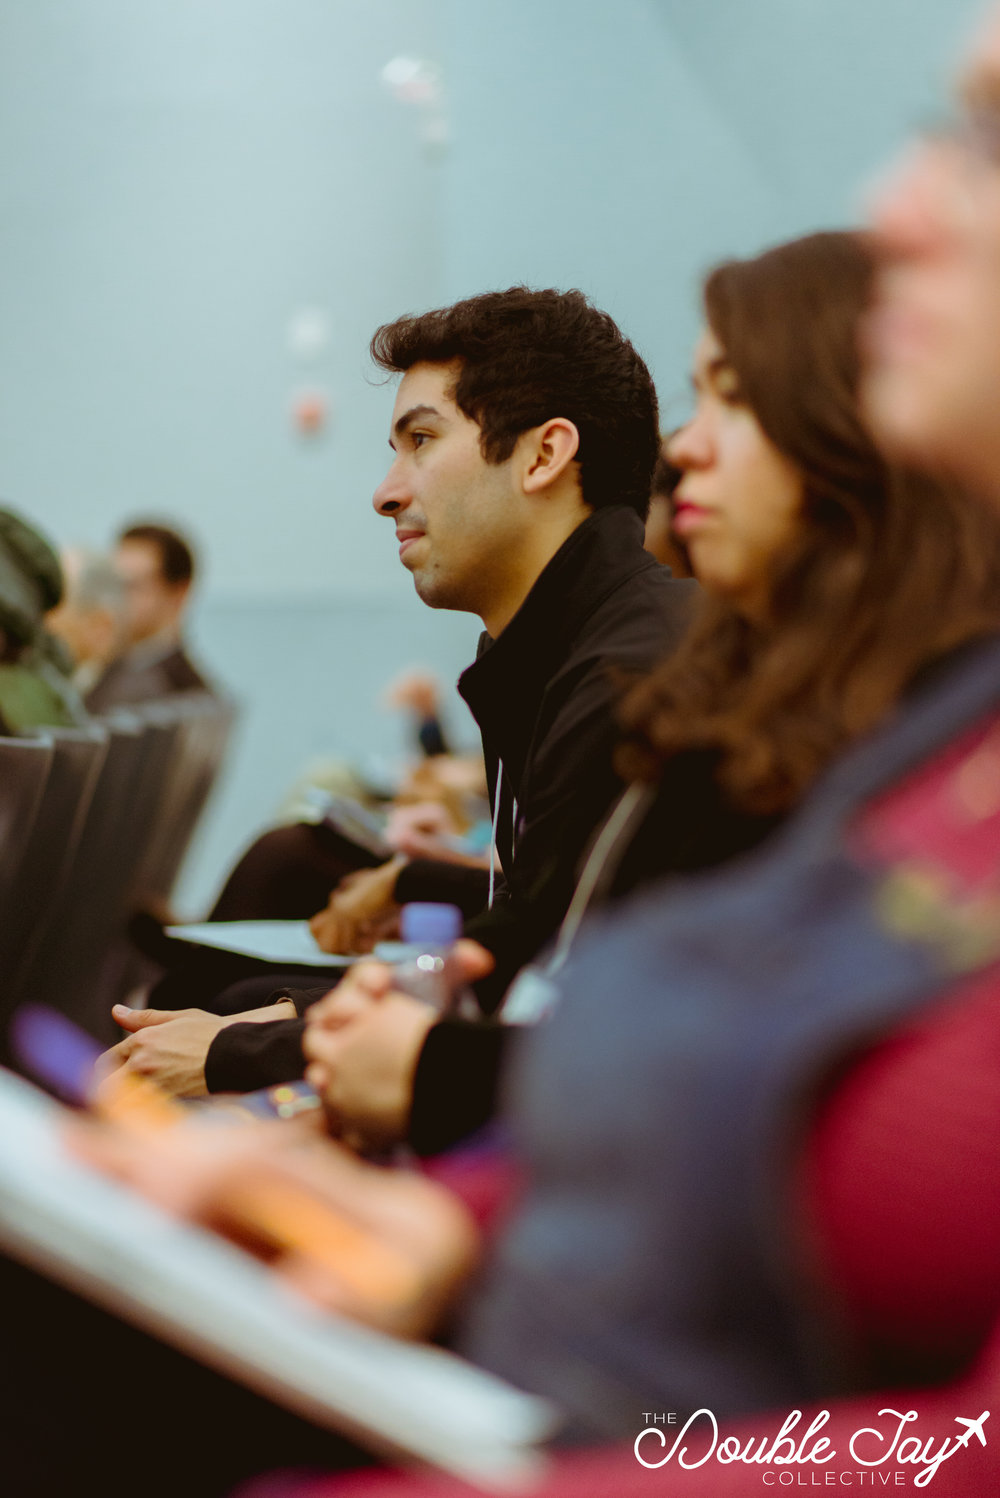 Western's University Student Council's President, Eddy Avila, was one of the public attendees at the conference who showed up bright and early Friday morning, and continued to attend panels all weekend long.